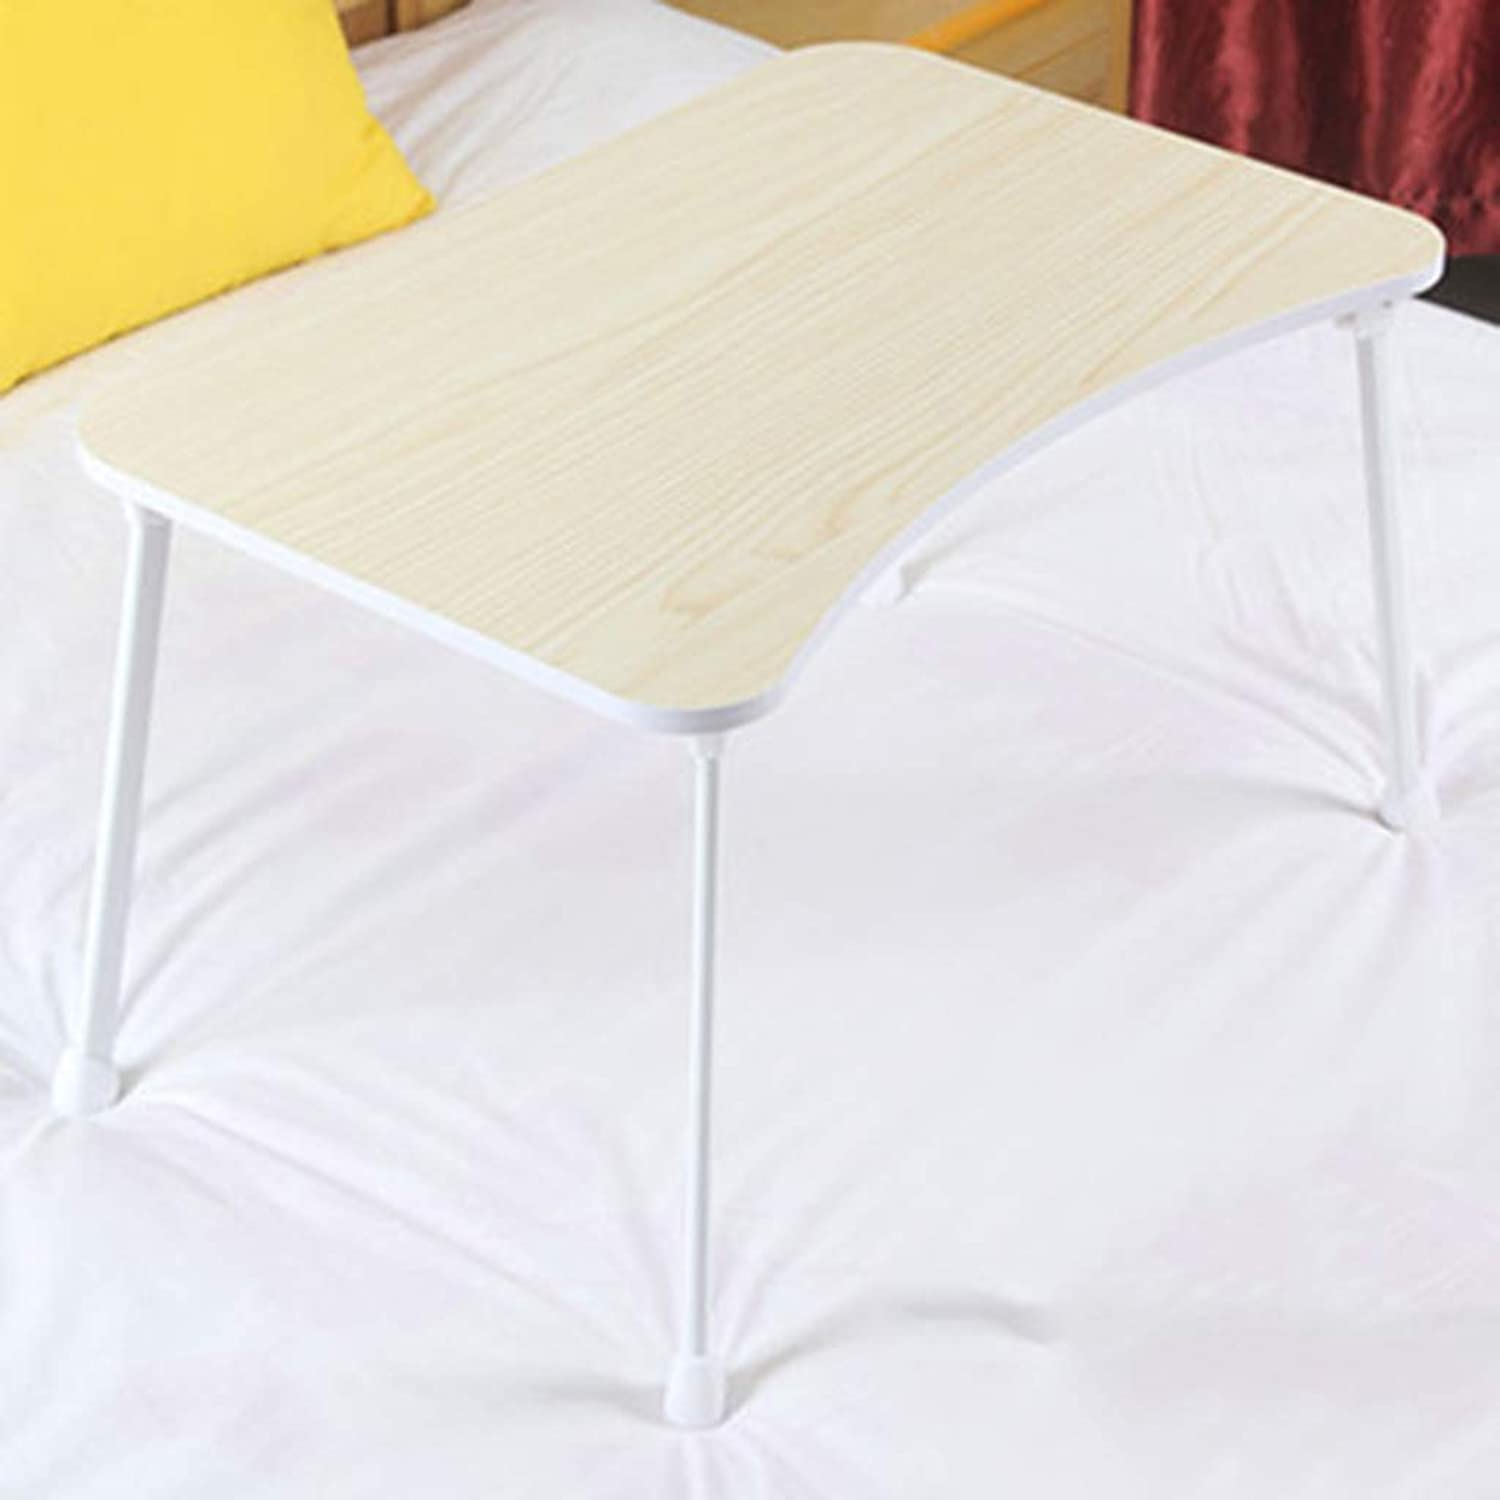 Folding Table Creative Bed Lazy Foldable Small Table Bedroom College Dormitory Laptop Desk (color   White)